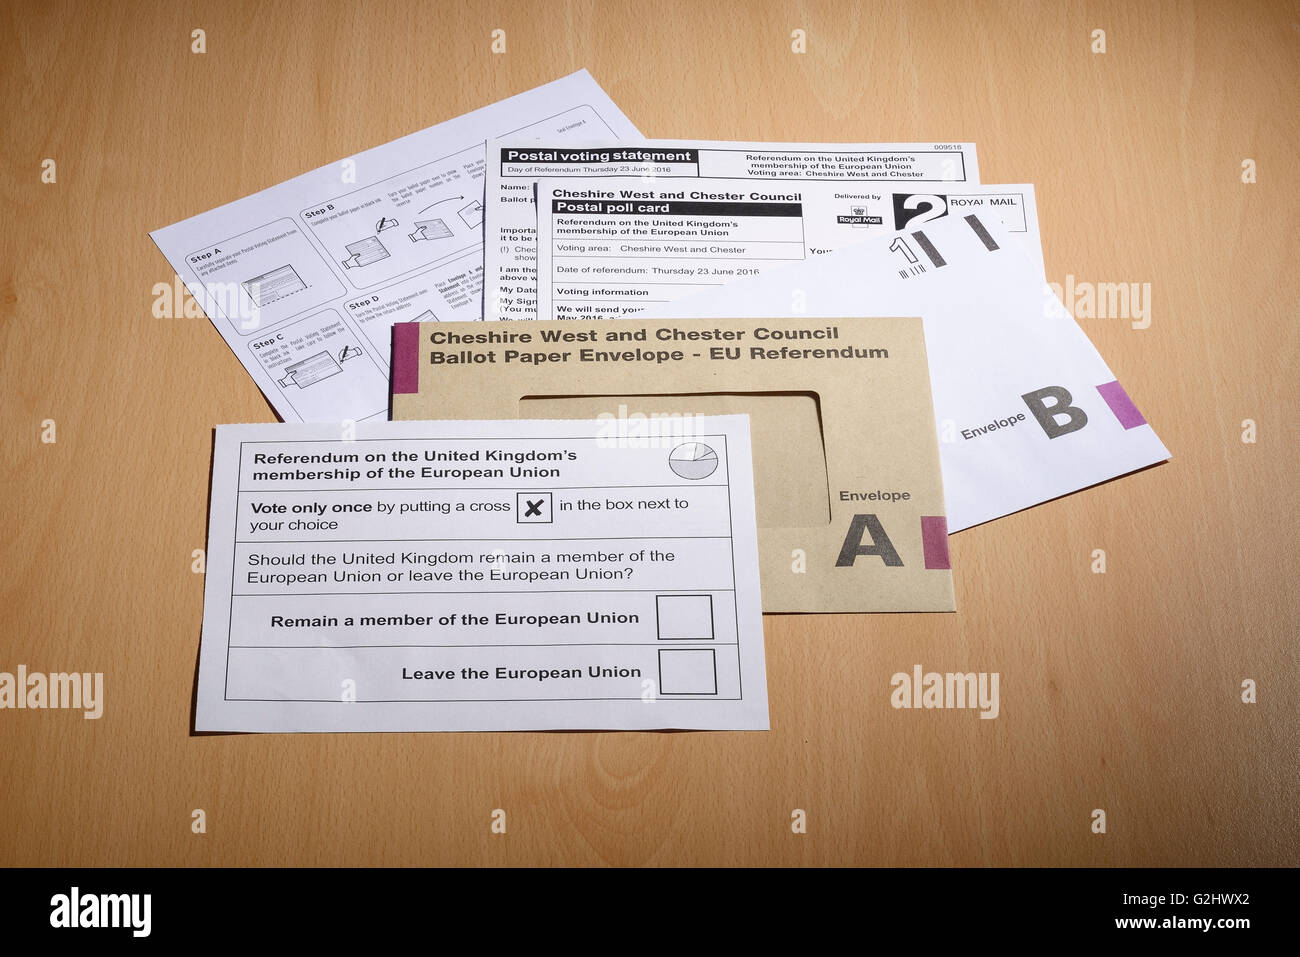 Postal voting forms for the UK referendum on membership of the EU arrive at a house in Chester, UK. 1st June 2016. - Stock Image